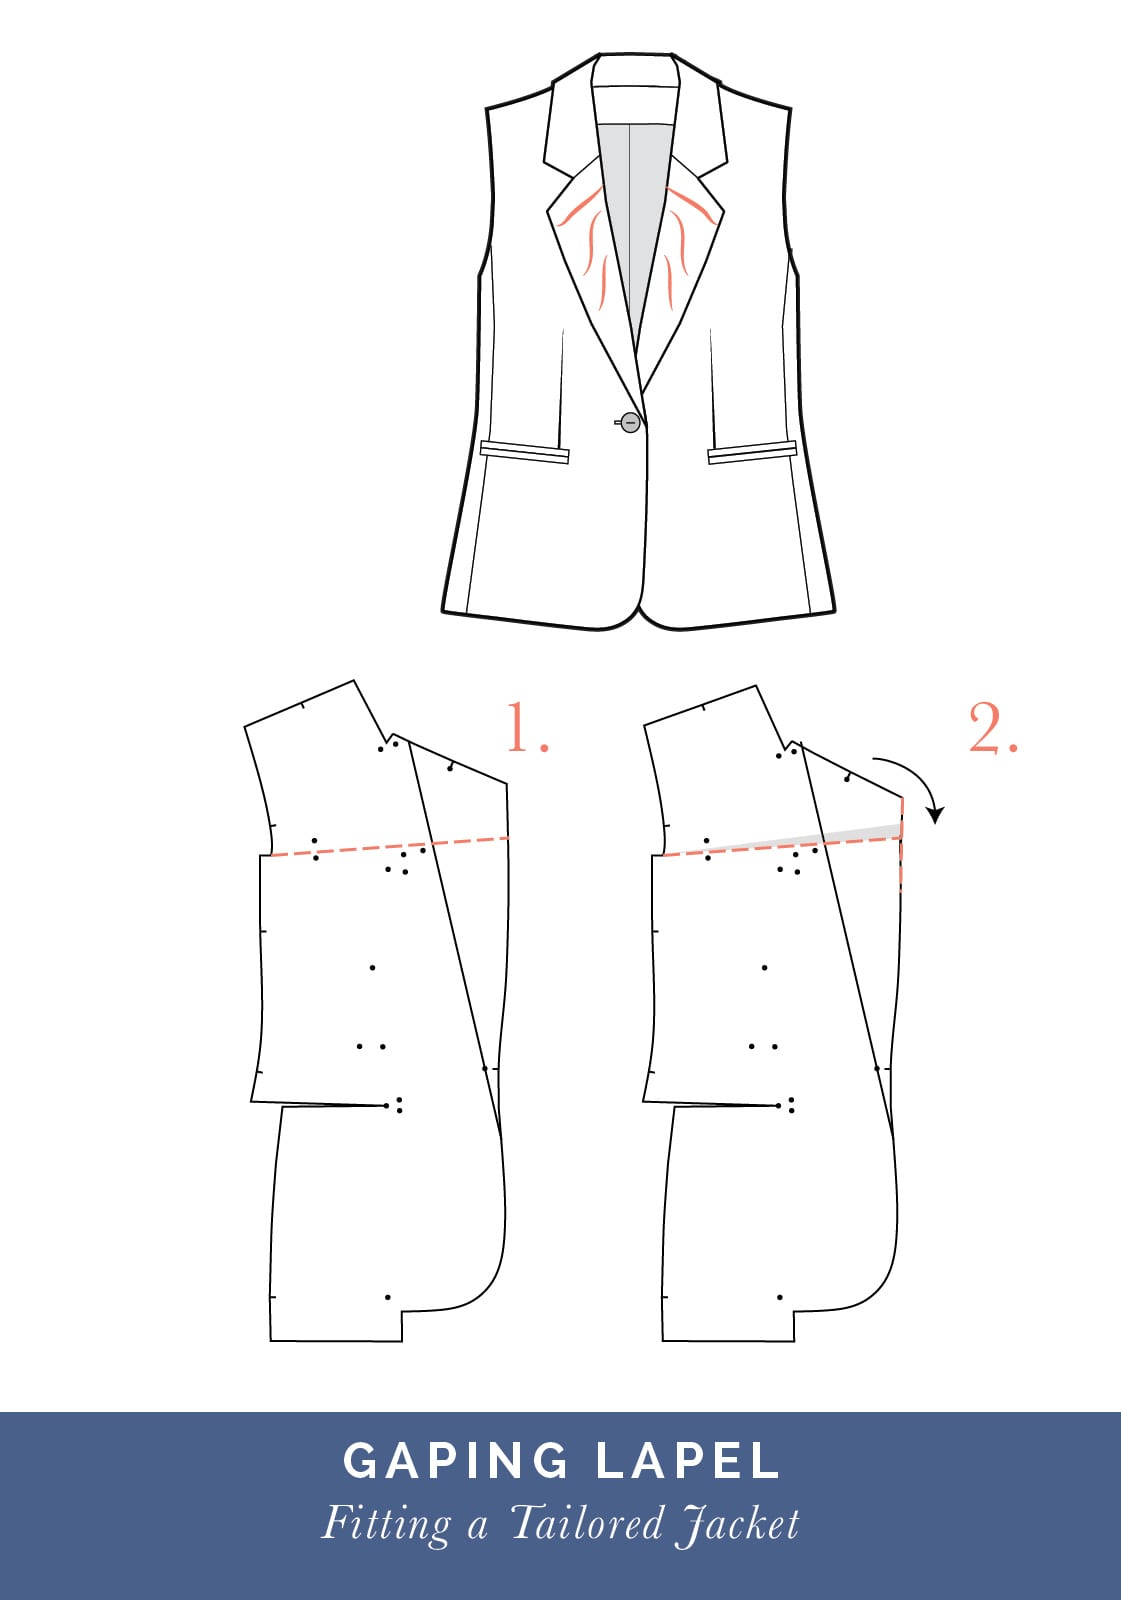 Gaping lapel // How to fit a Tailored jacket or Blazer // Fit adjustment issues and fixes